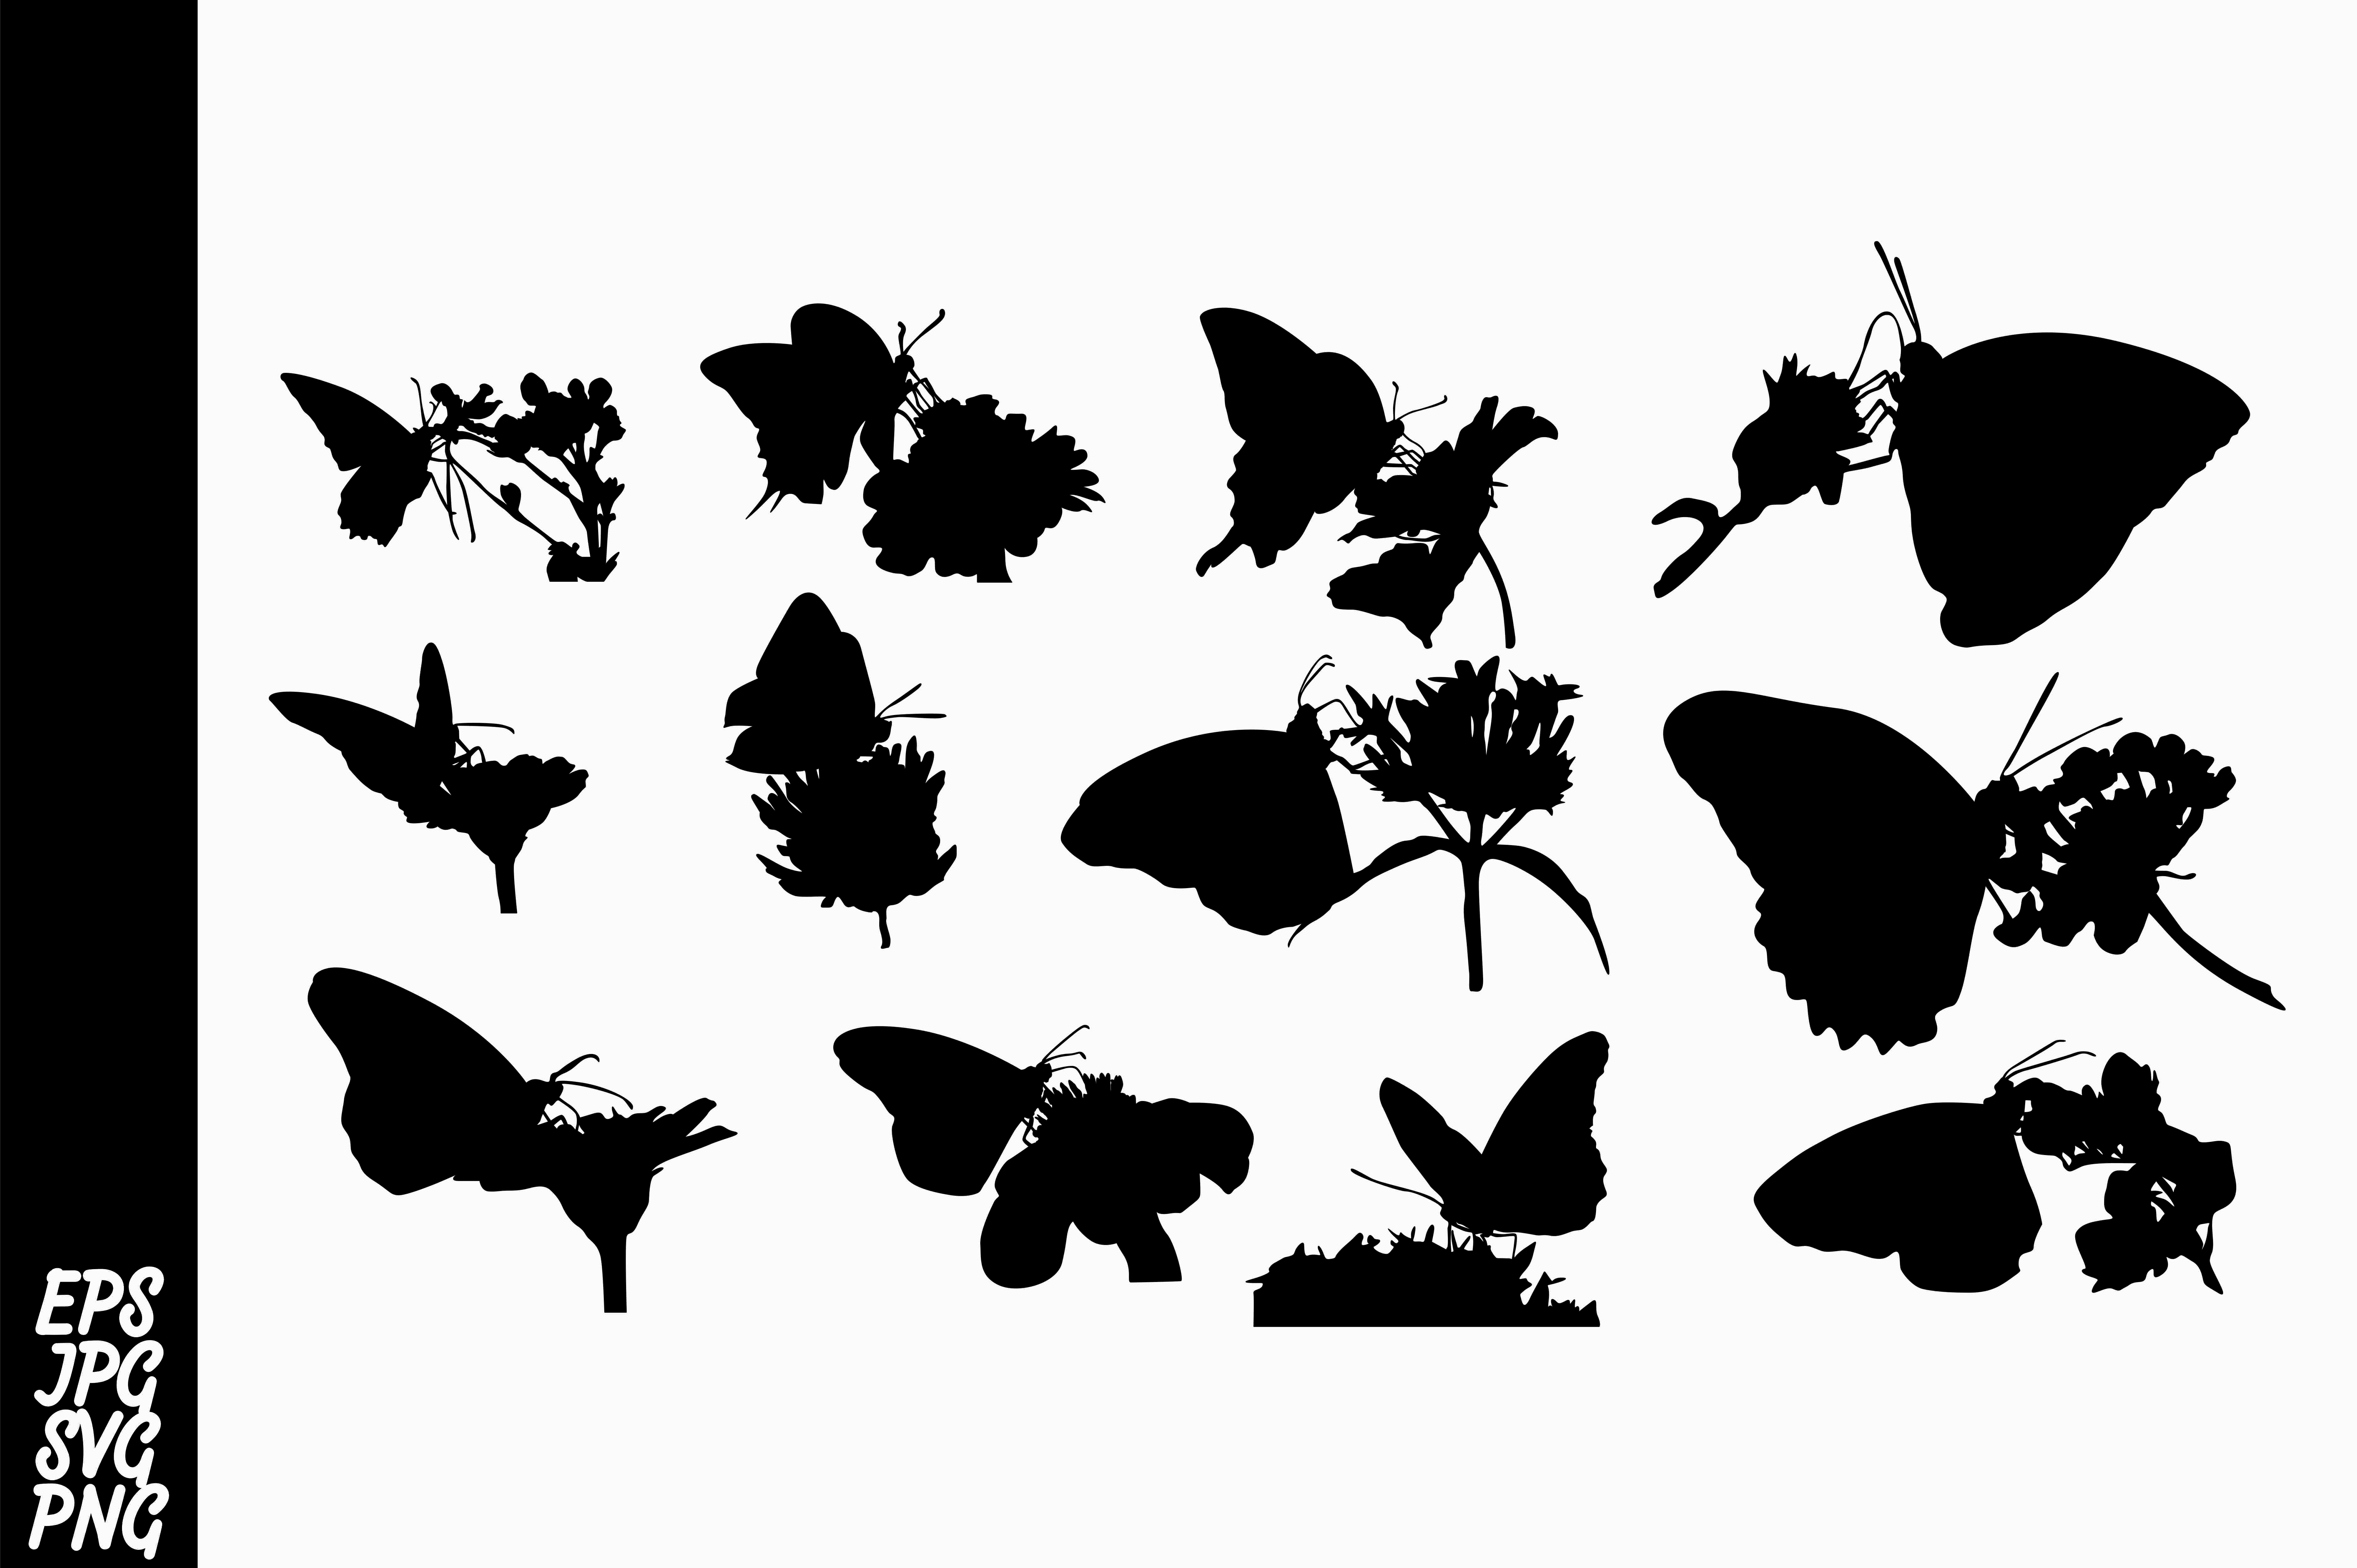 Download Free Butterfly Silhouette Svg Bundle Graphic By Arief Sapta Adjie for Cricut Explore, Silhouette and other cutting machines.